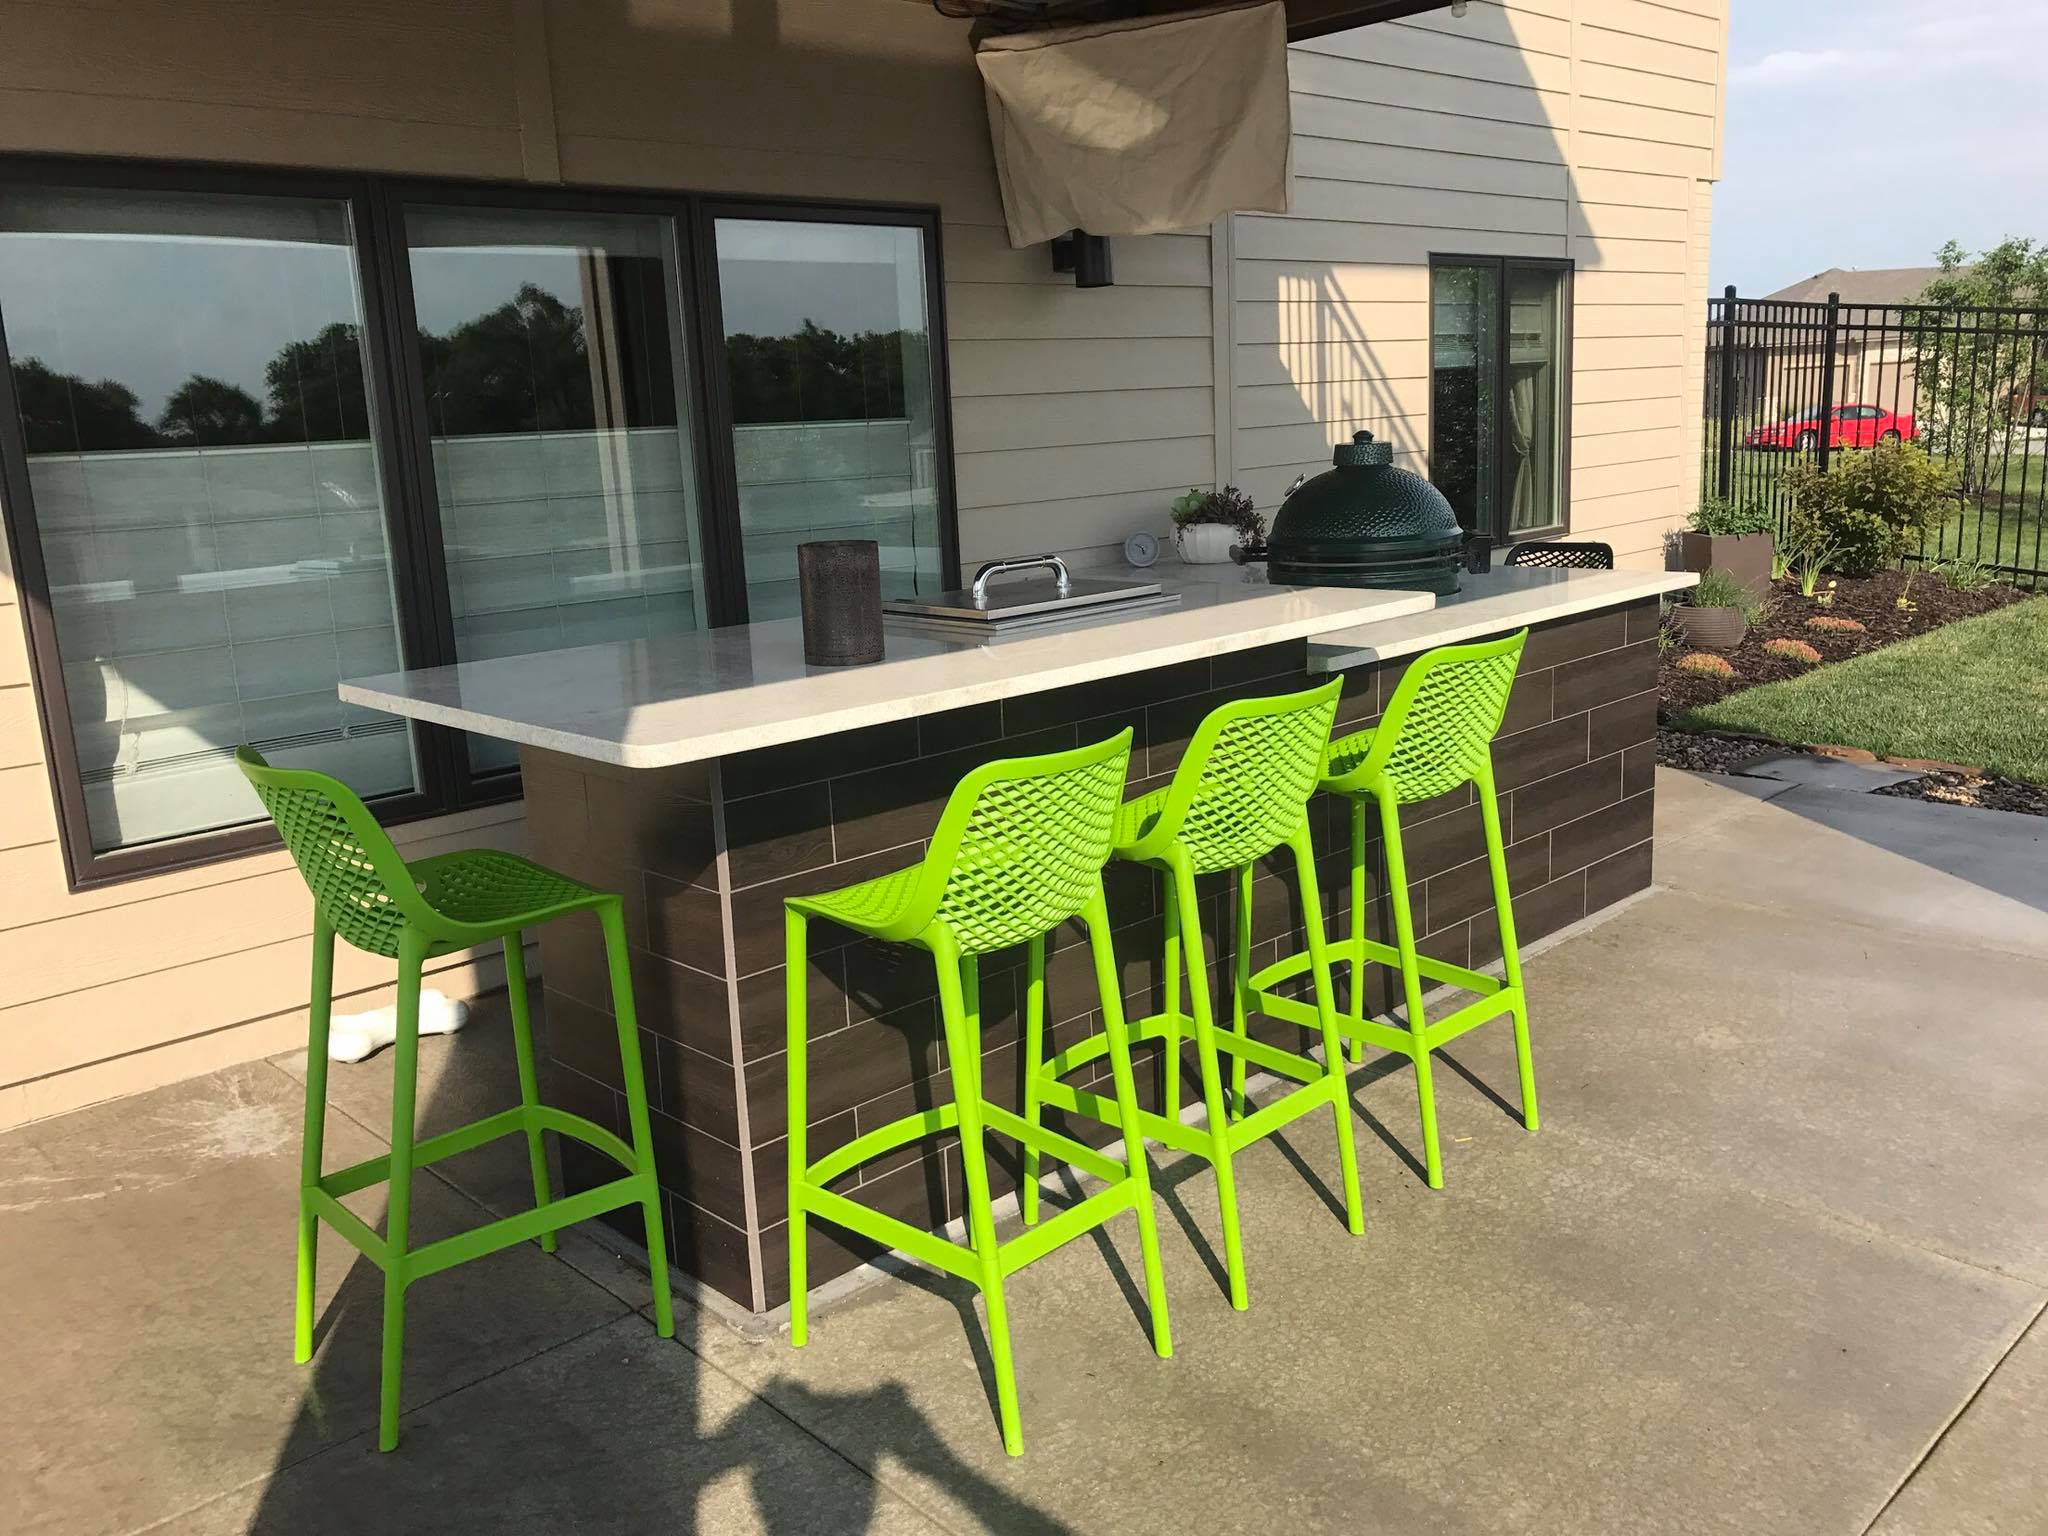 Outdoor kitchen and seating